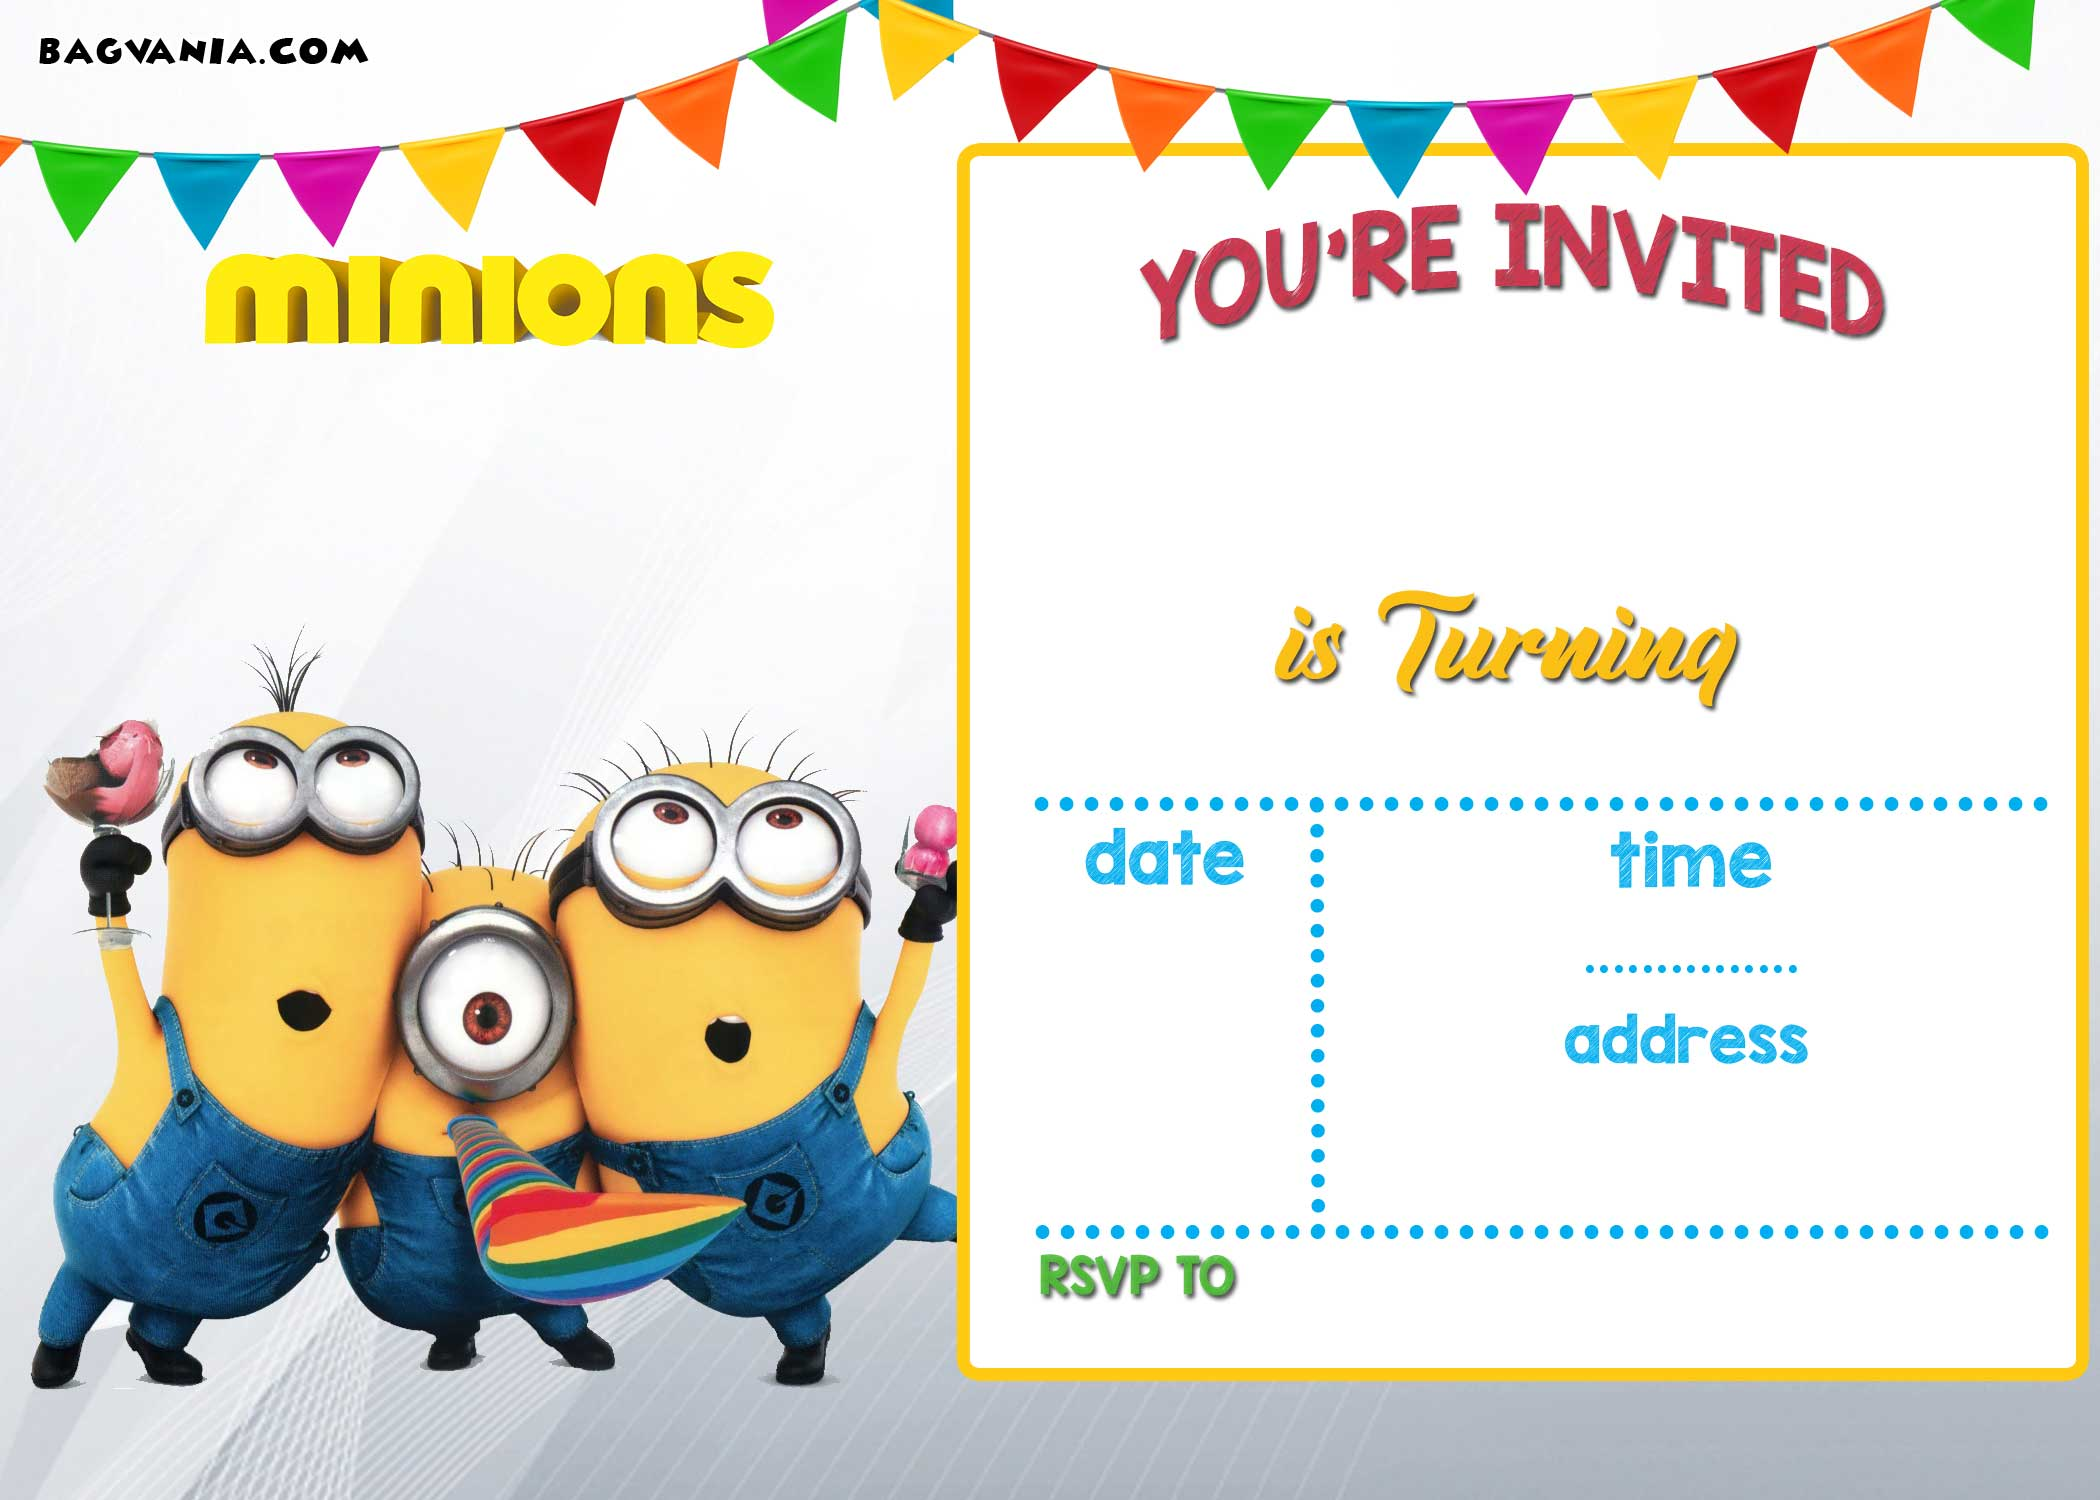 As Our Reader Request, We Add More Minion Birthday Party Invitation  Templates! More And More!  Free Birthday Party Invitation Template